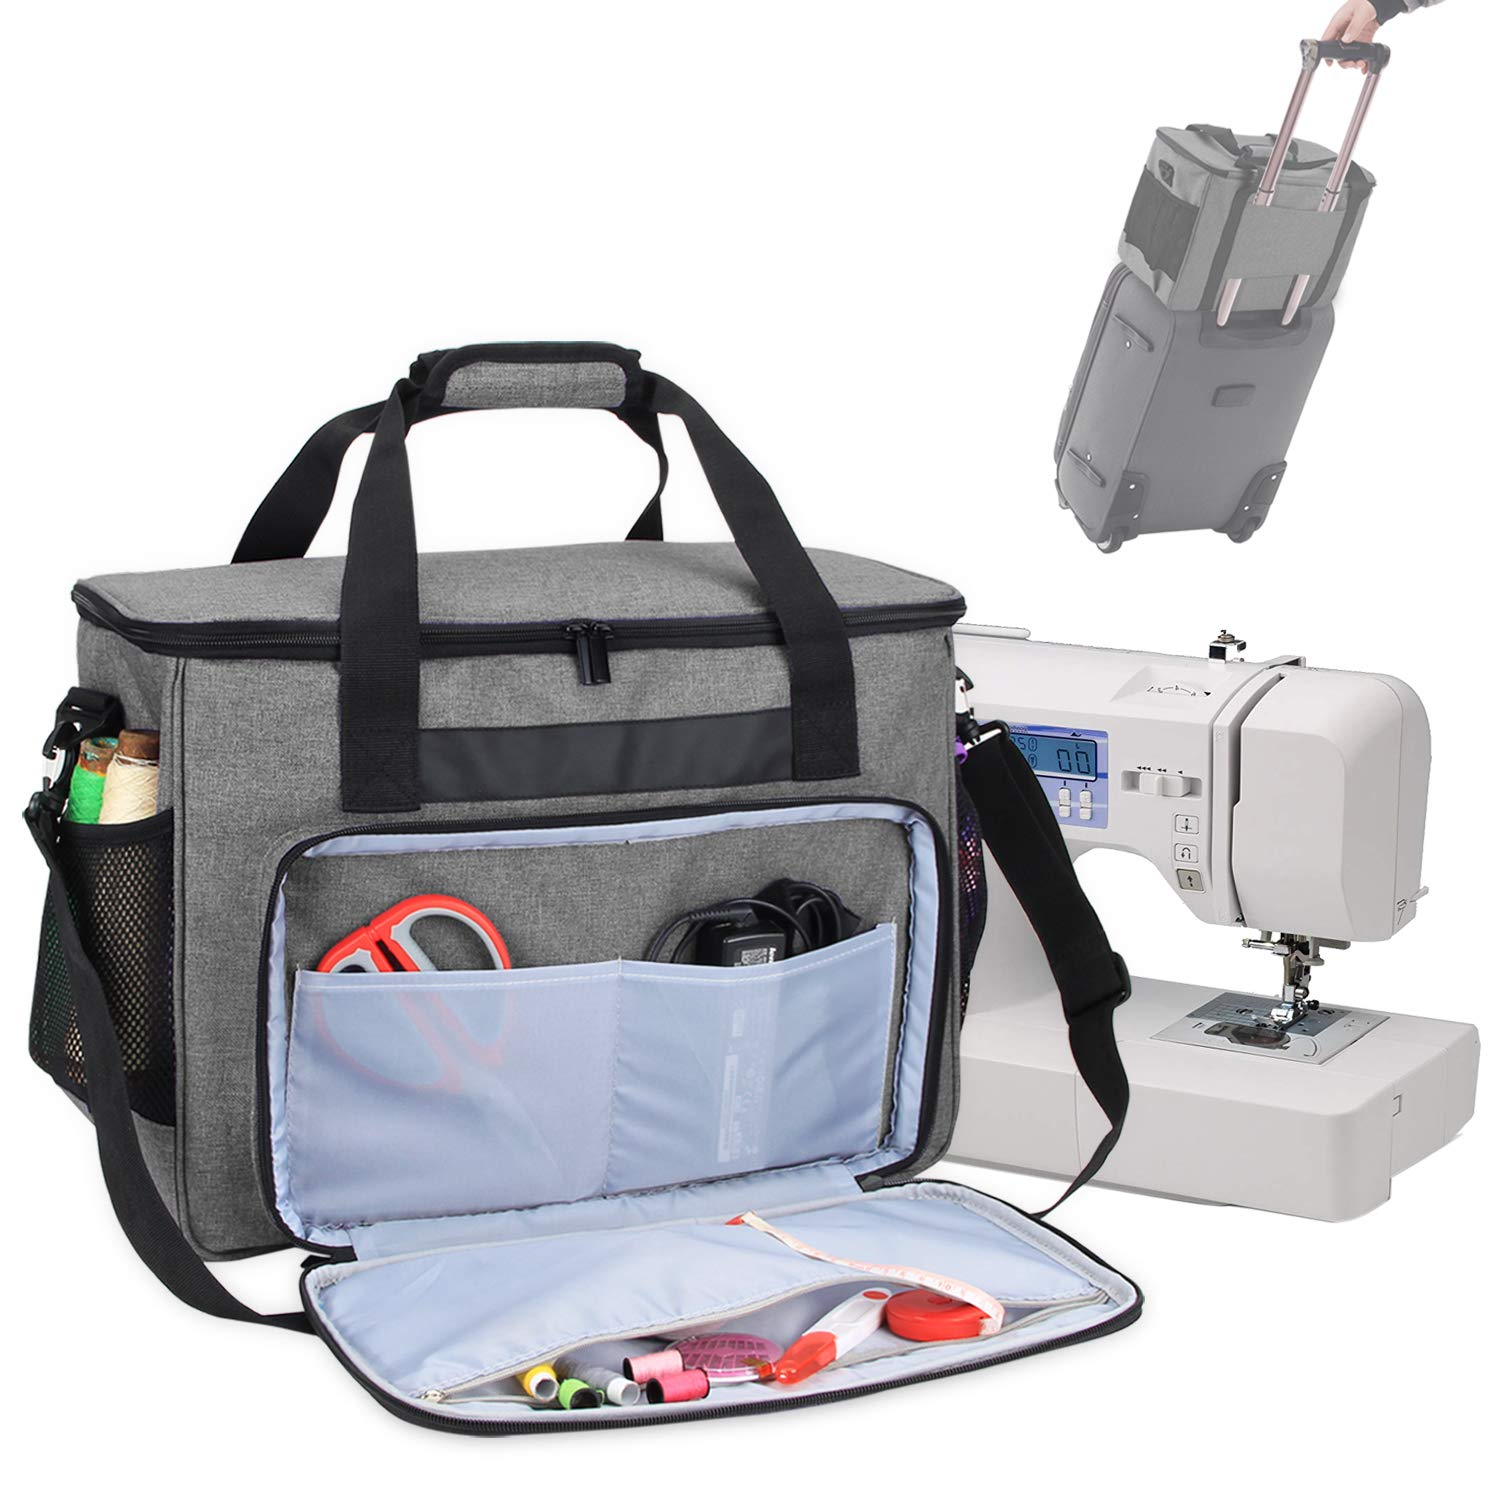 Teamoy Sewing Machine Bag, Travel Tote Bag for Most Standard Sewing Machines and Accessories, Gray by Teamoy